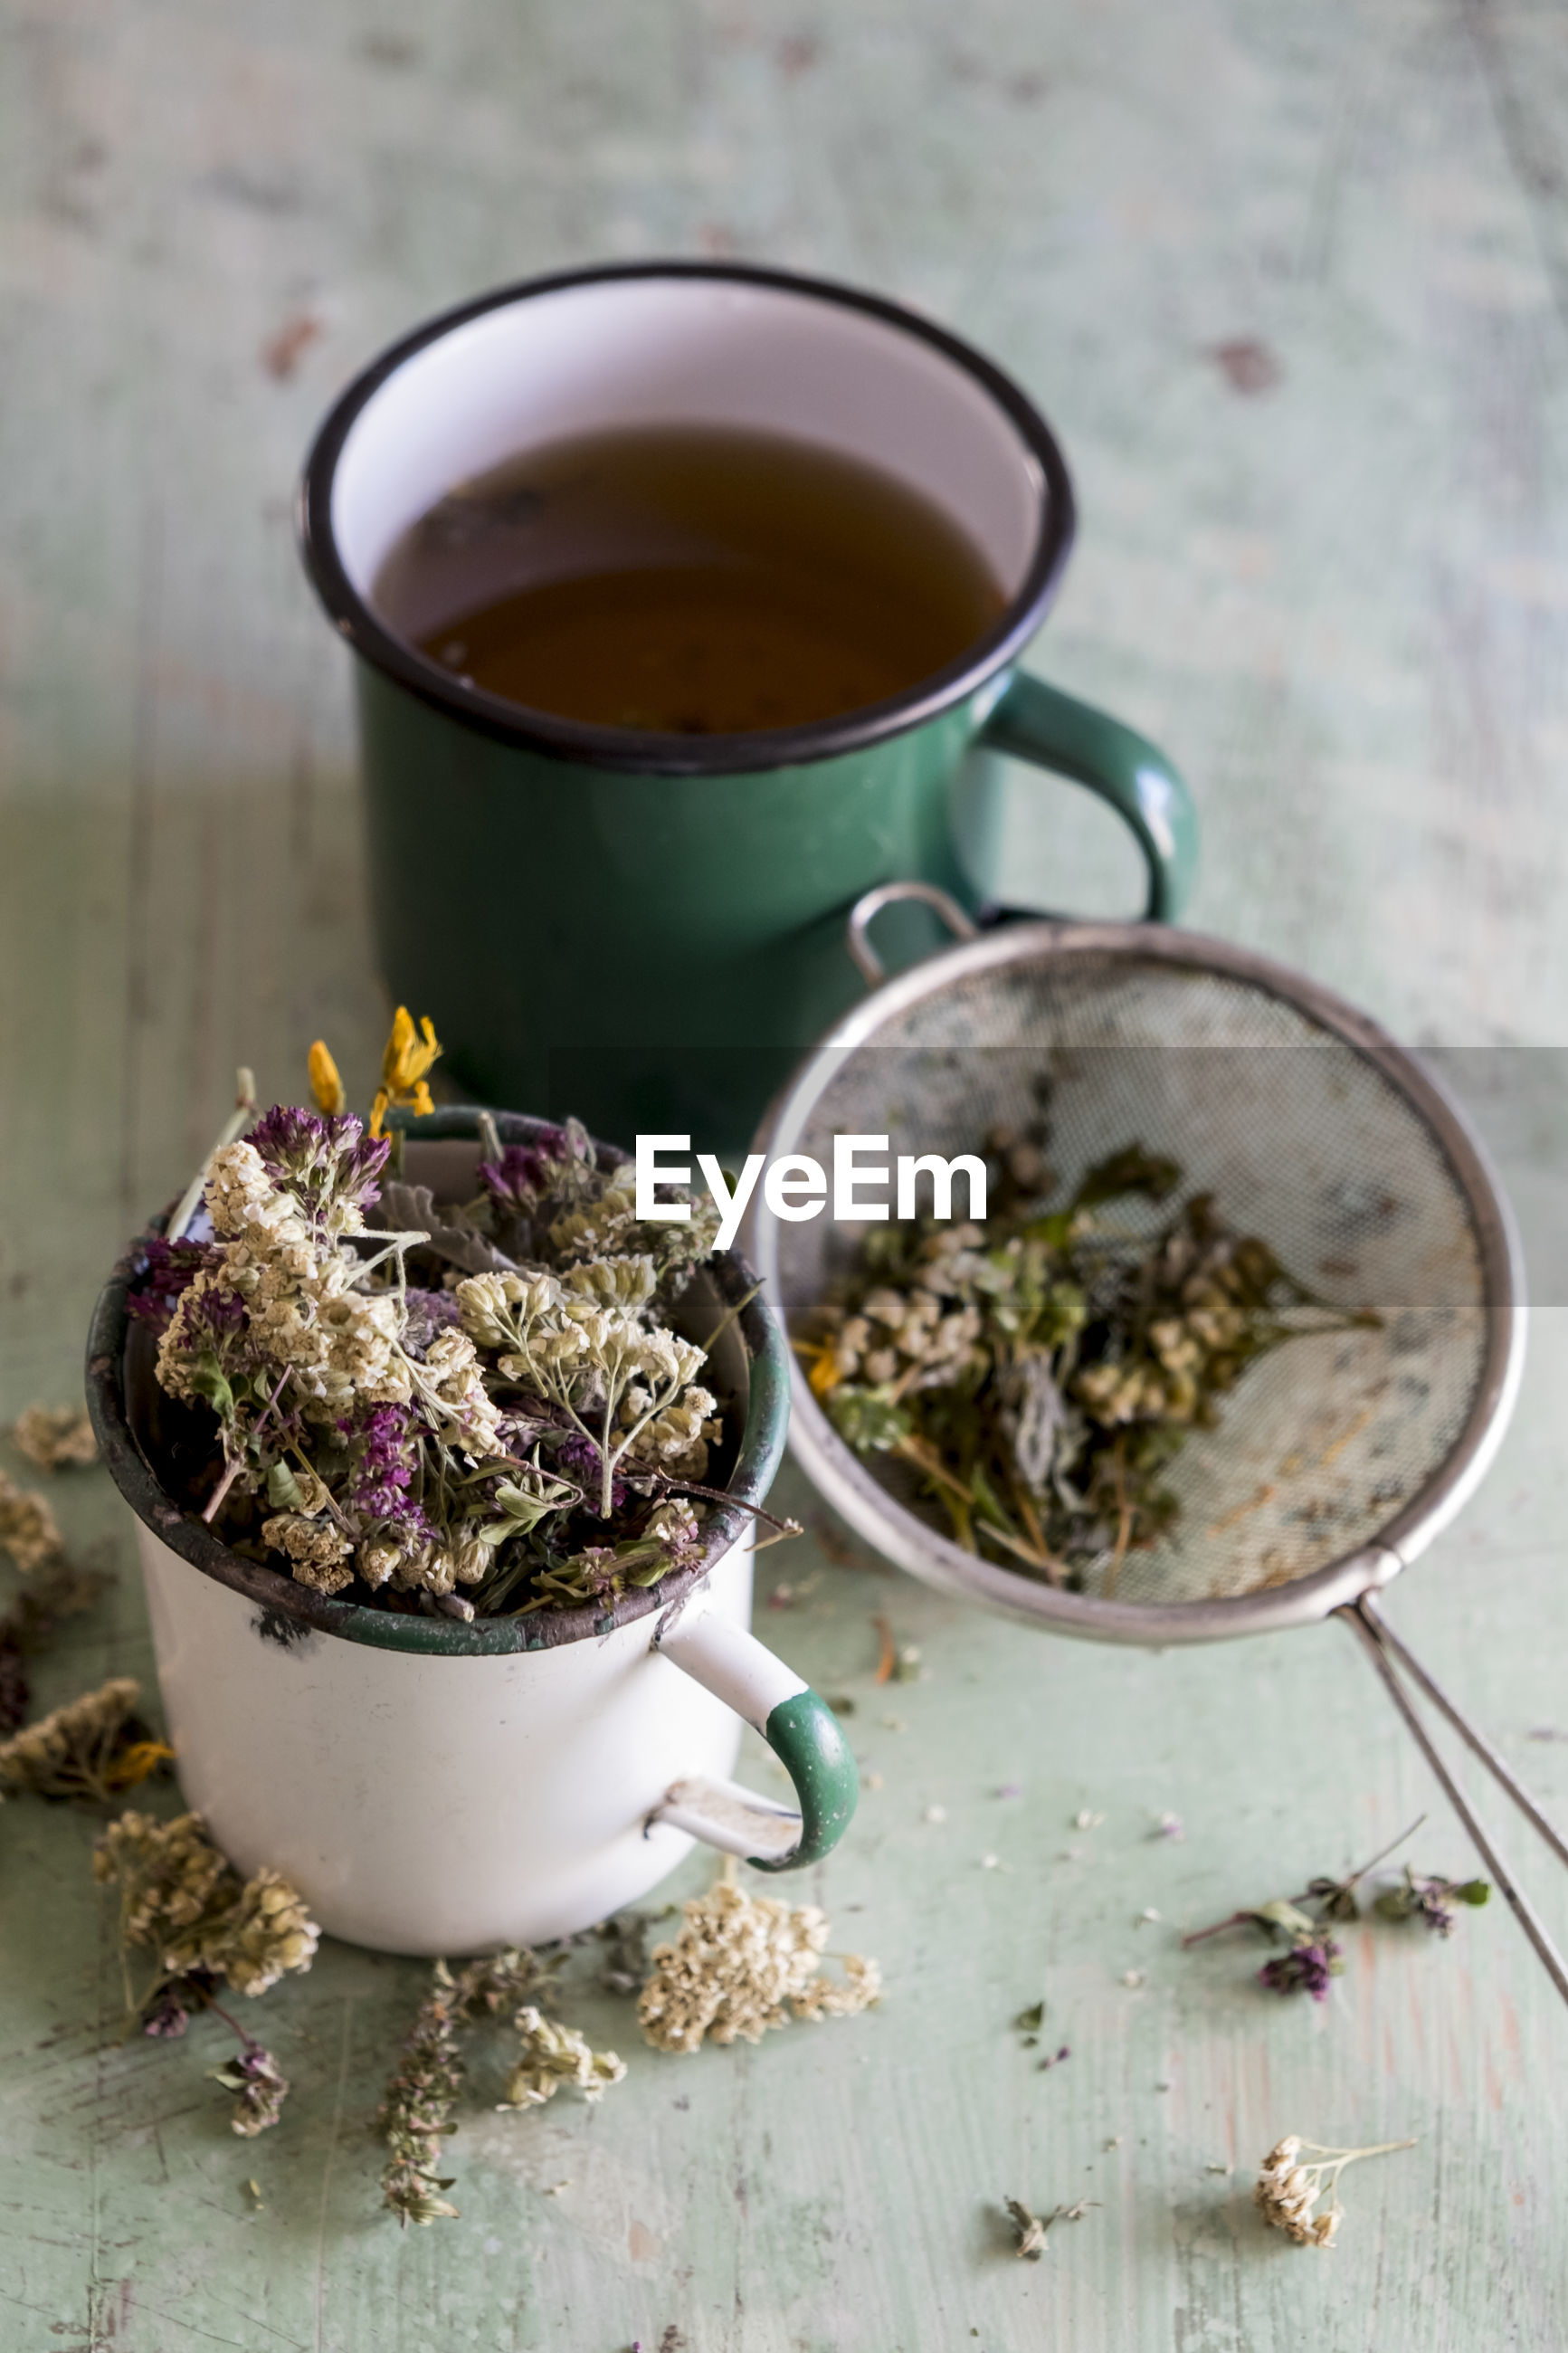 High angle view of flower in tea served on table